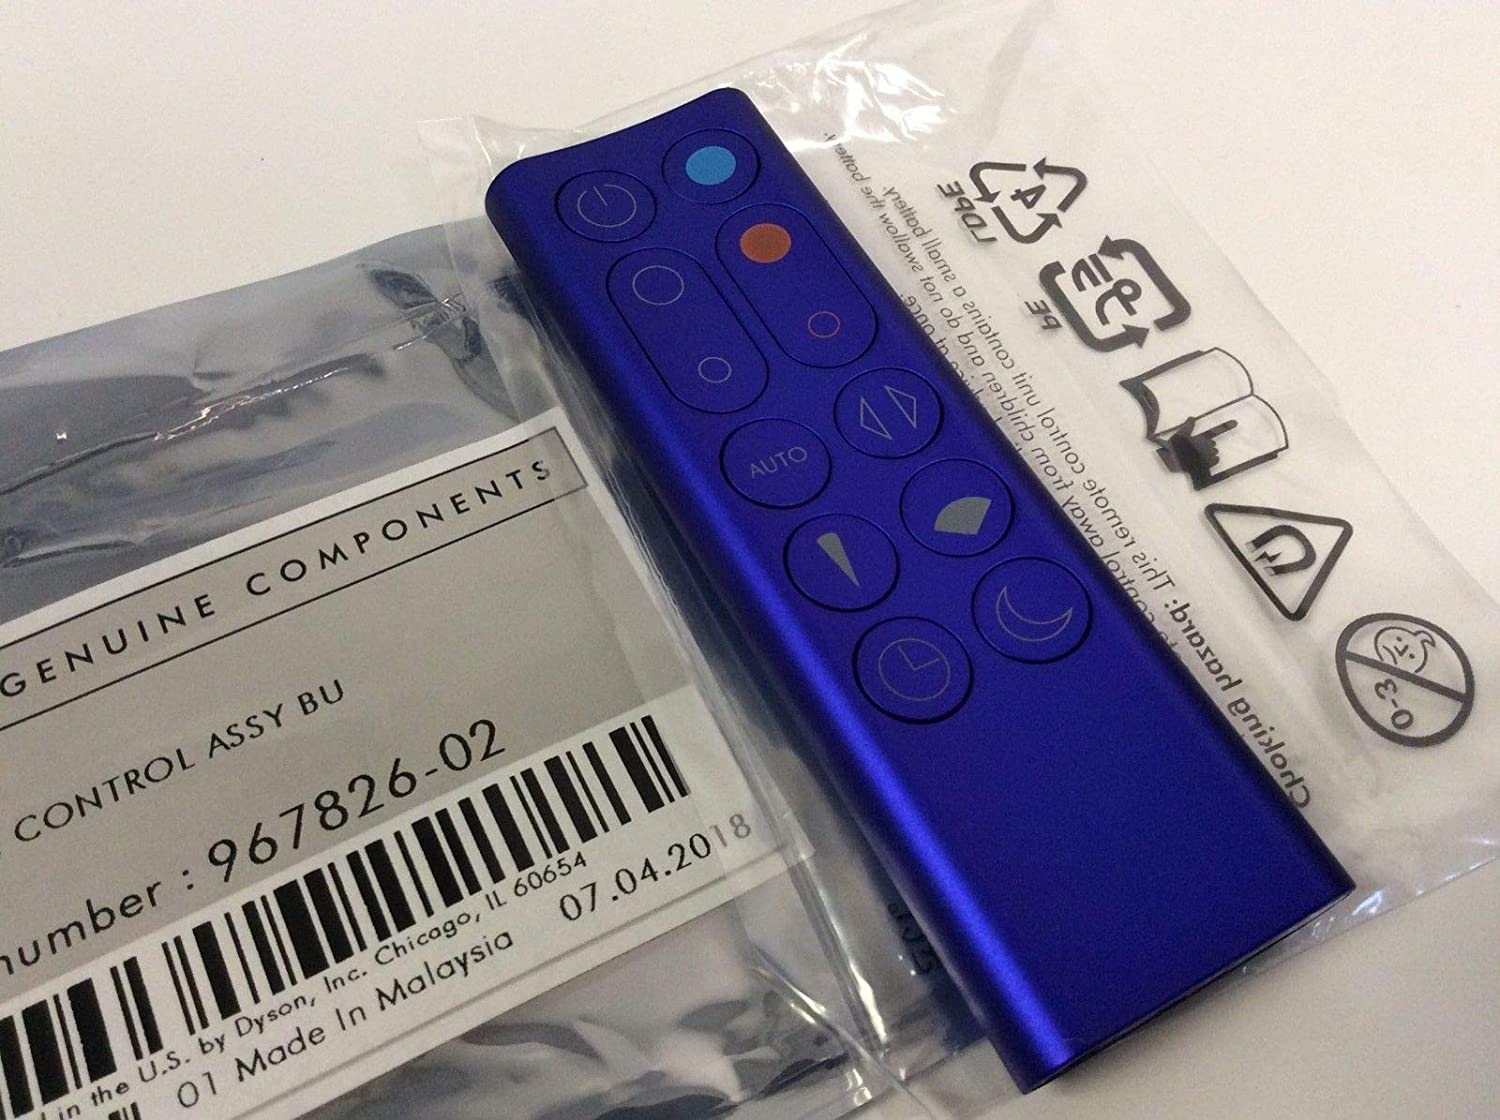 Dyson Replacement Remote Control 967826 02 For Dyson Pure Hot And Cool Link Purifier Blue Amazon Ca Home Kitchen